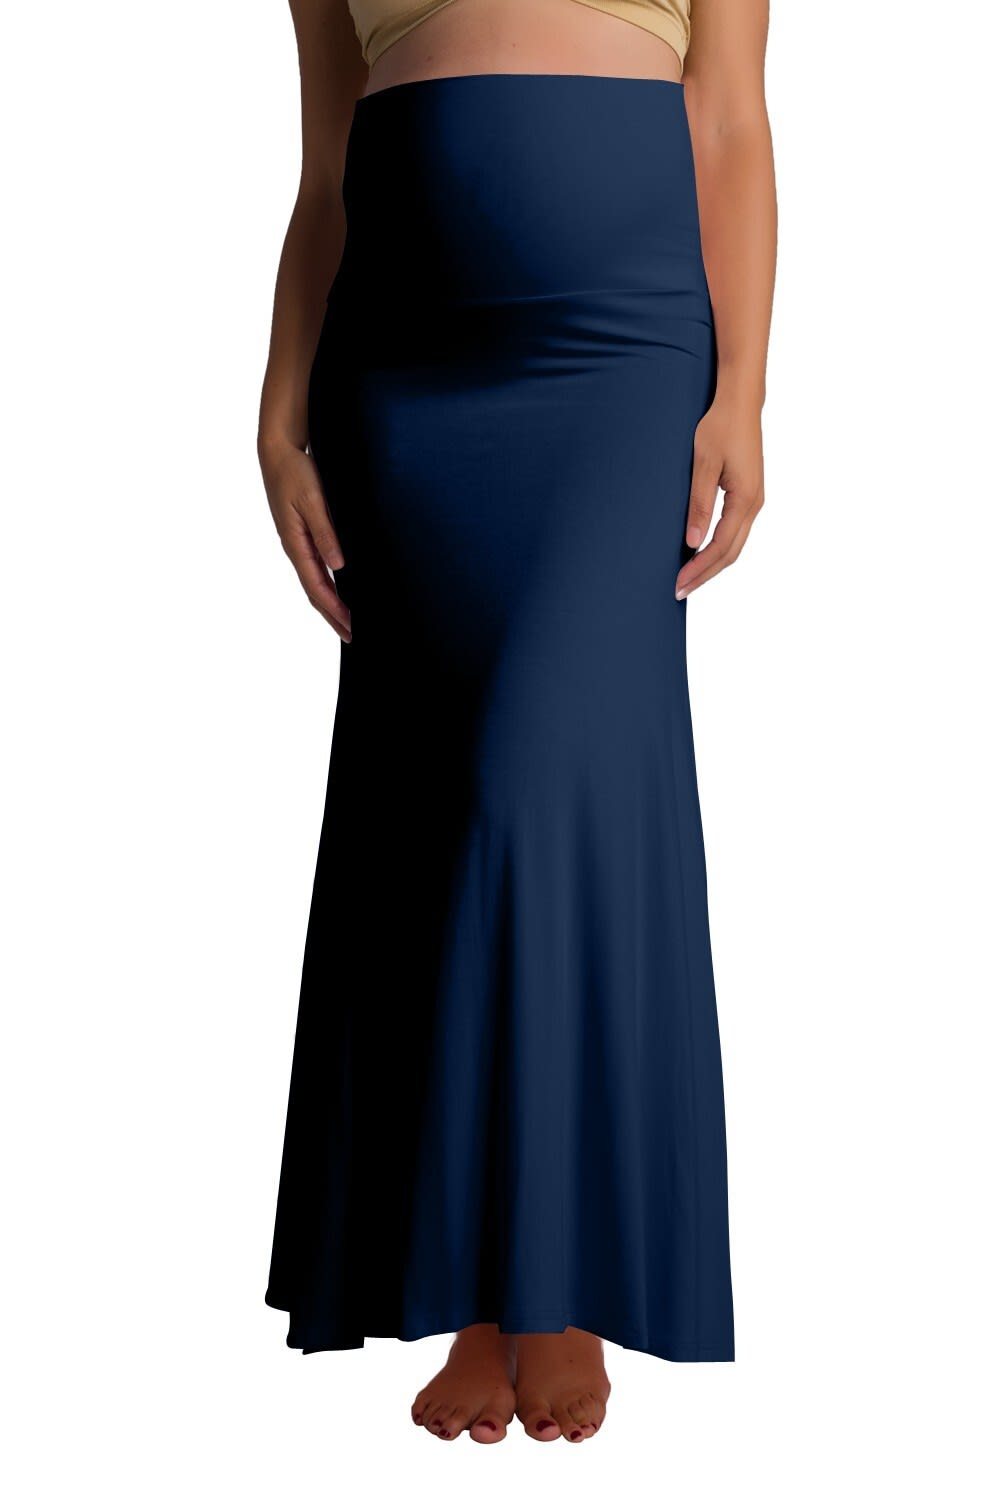 Ultra-Soft Maternity Fold-Over Skirt - Navy - Back